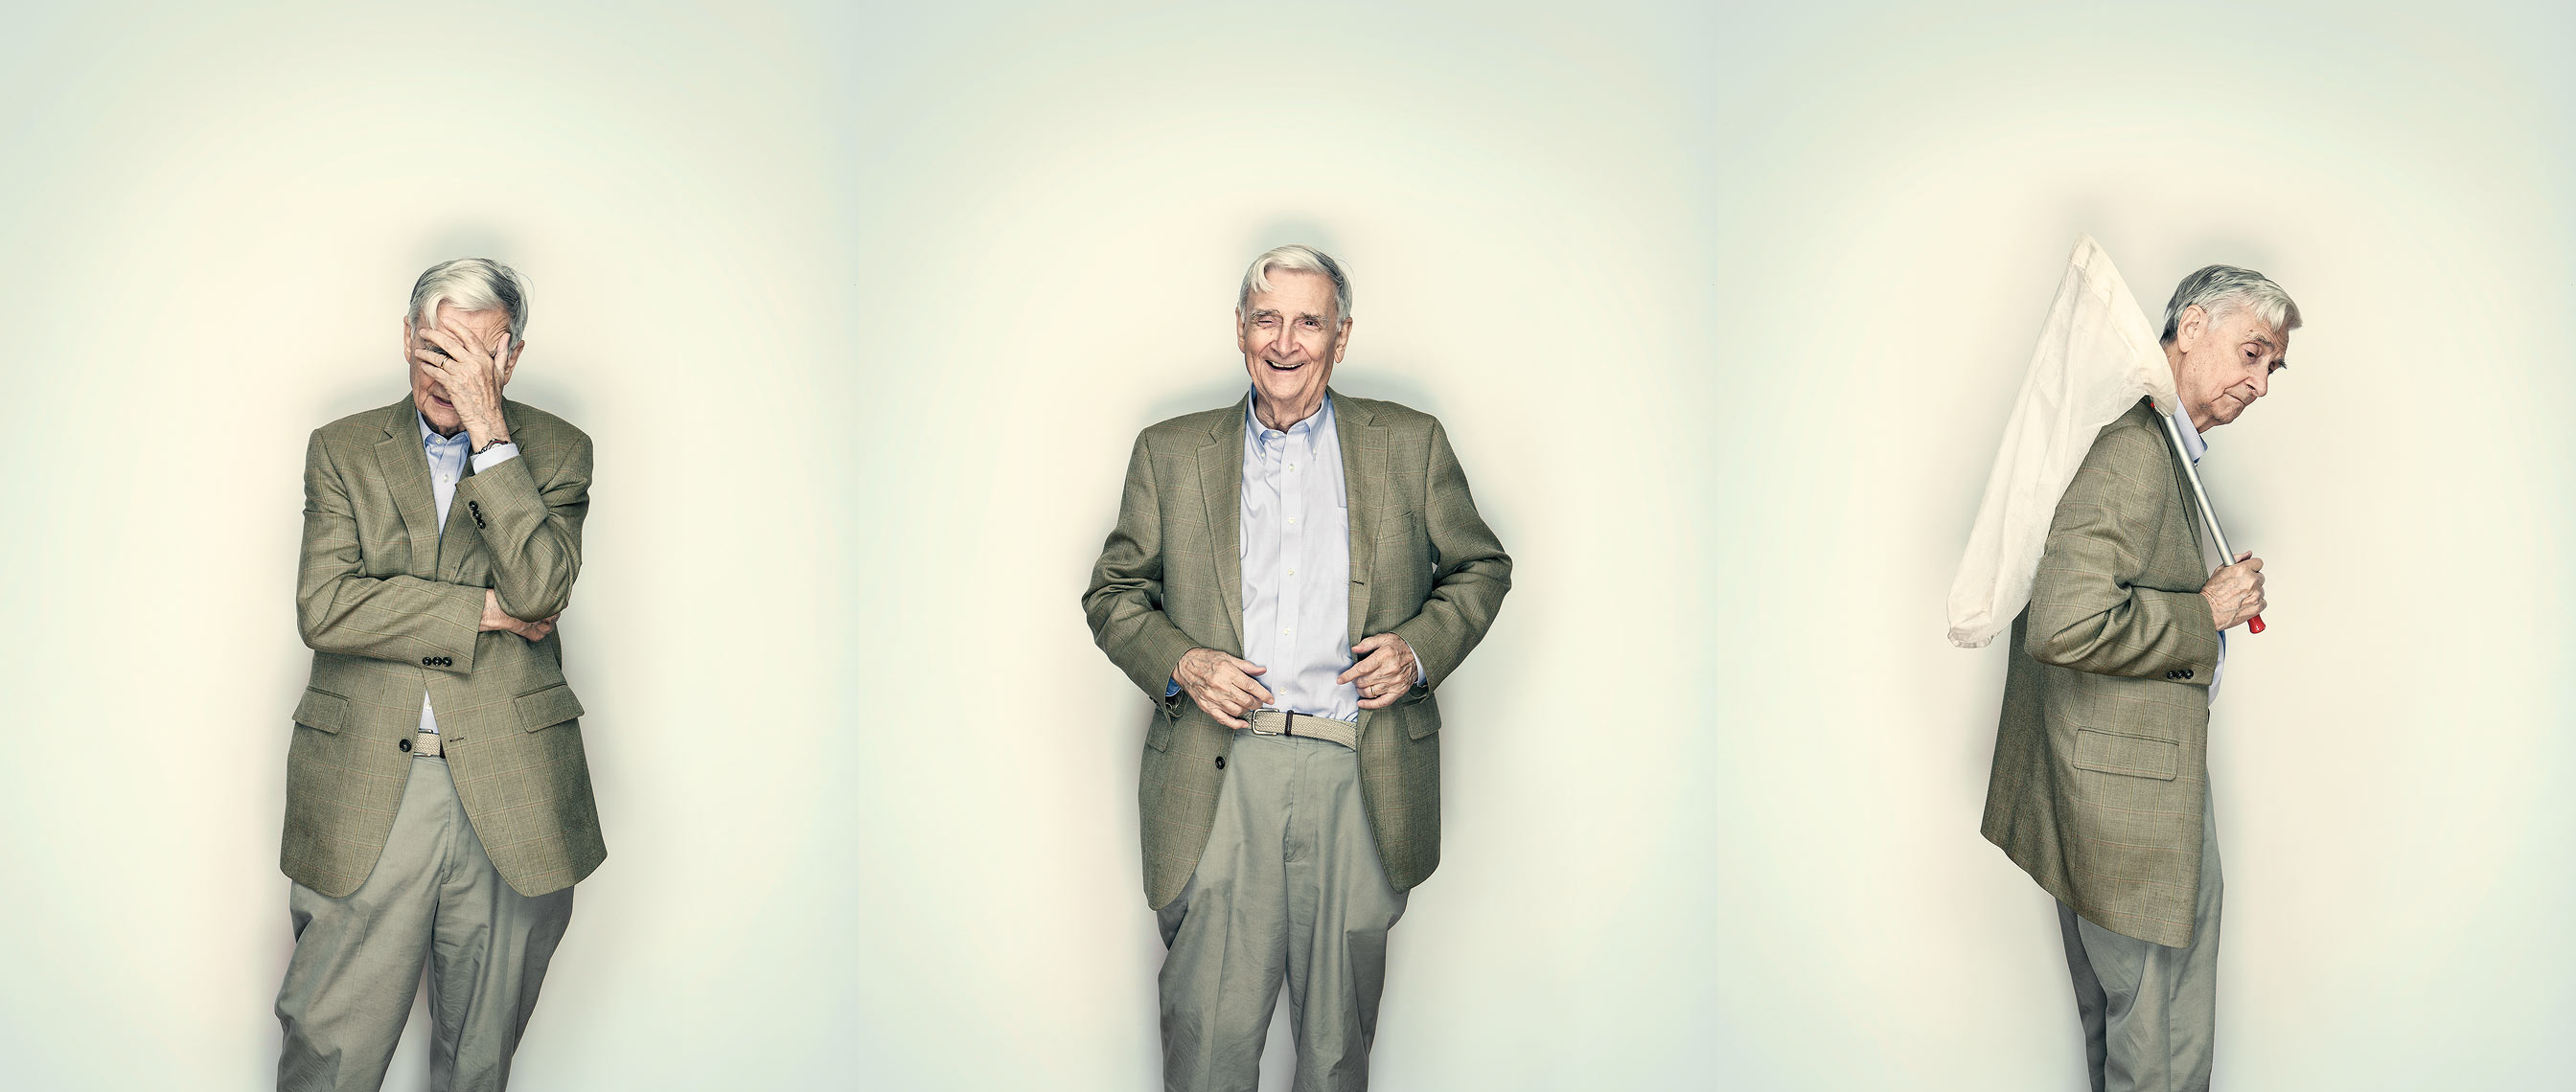 Portrait of Harvard professor, author, and biologist E.O. Wilson shot for Wellcome Trust Mosaic Project